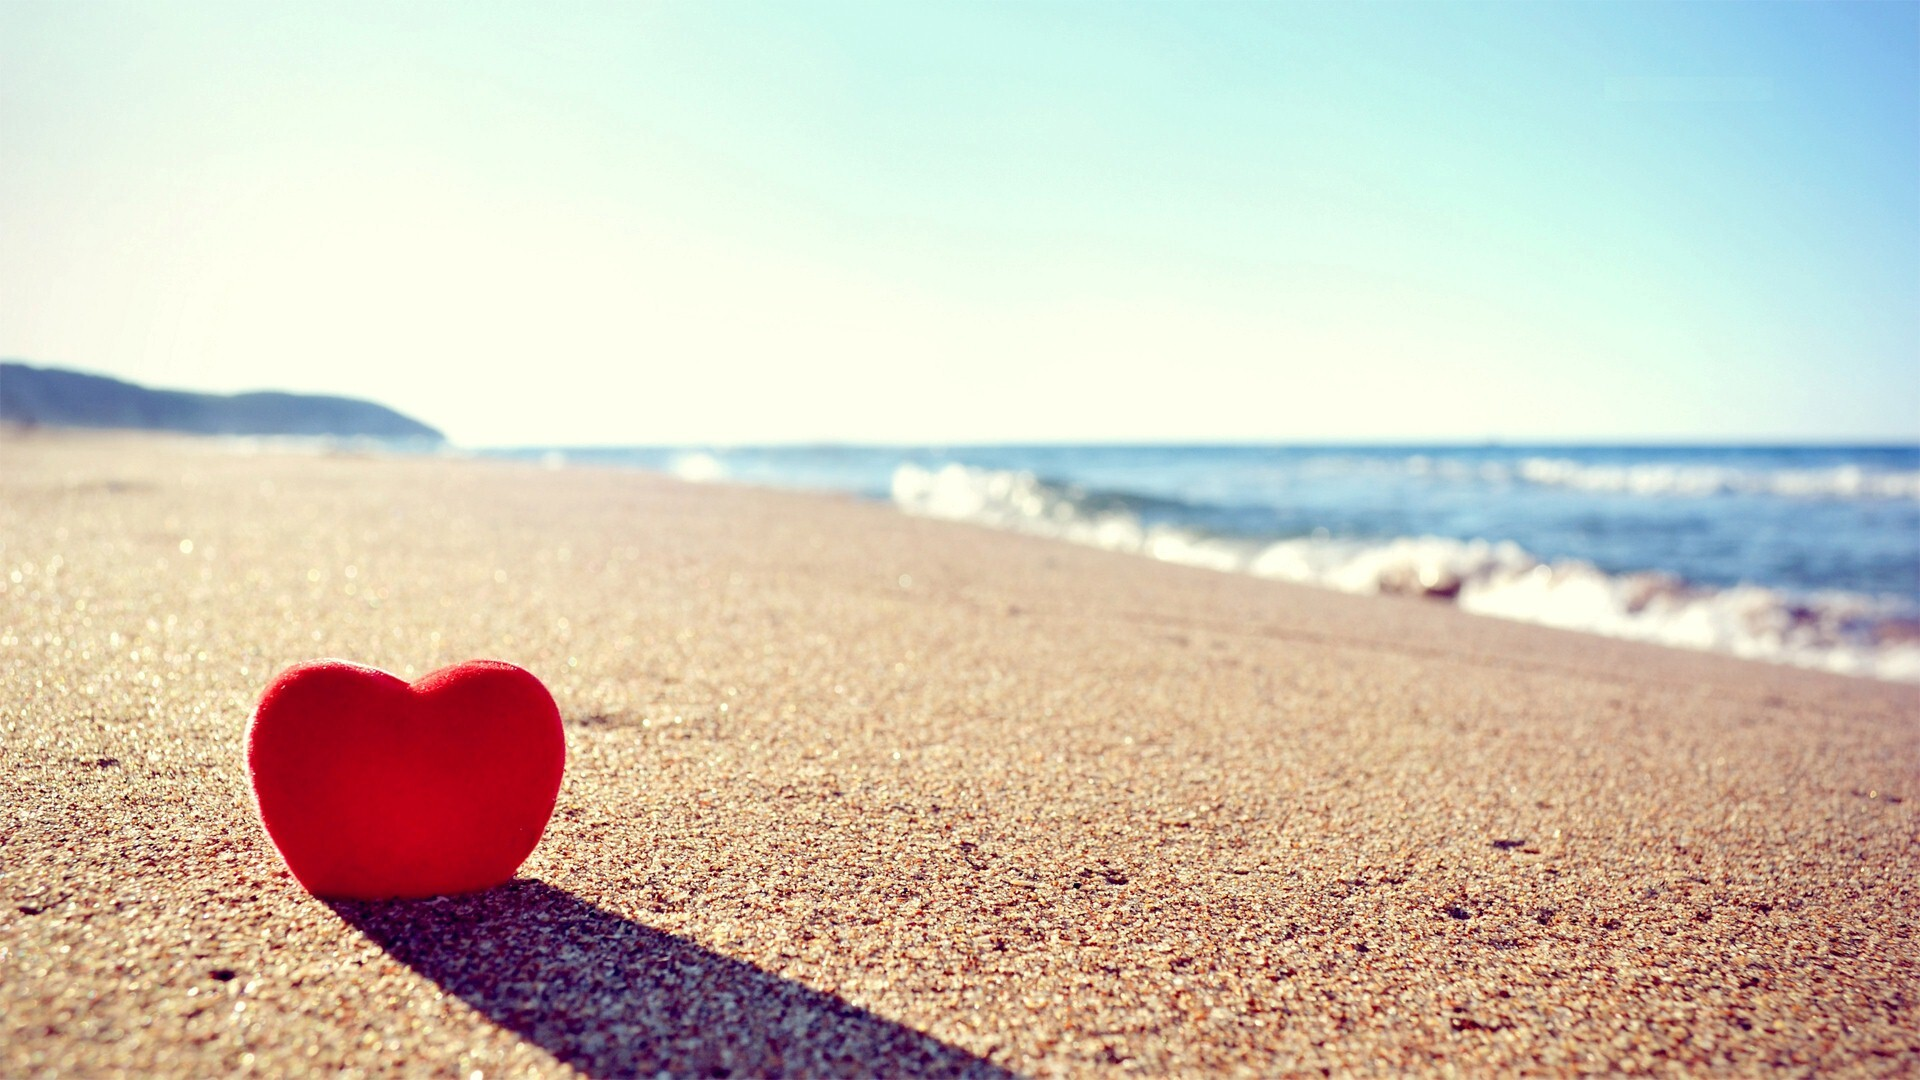 Love heart on beach hd photo background hd wallpapers - Love wallpapers hd ...